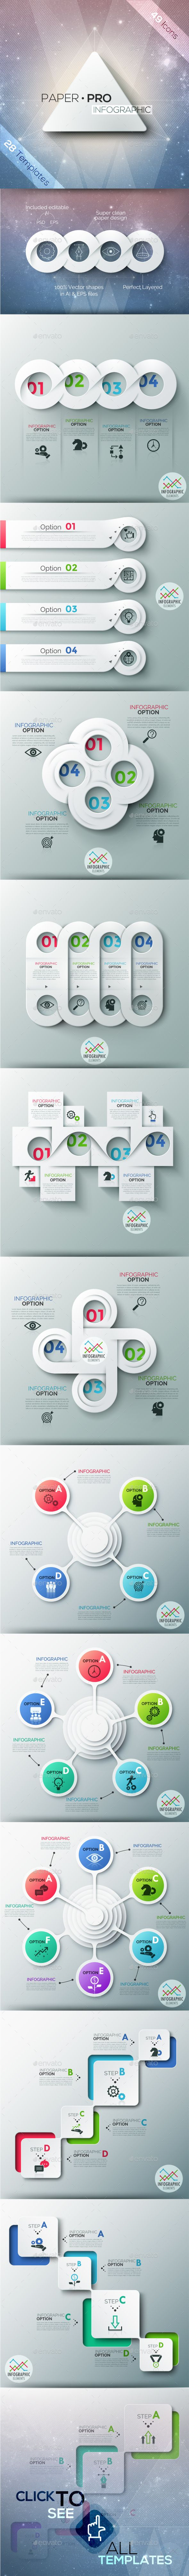 Paper-Pro Infographic Design - Infographic Template PSD, Vector EPS, AI Illustrator. Download here: http://graphicriver.net/item/paperpro-infographic/16717121?s_rank=39&ref=yinkira